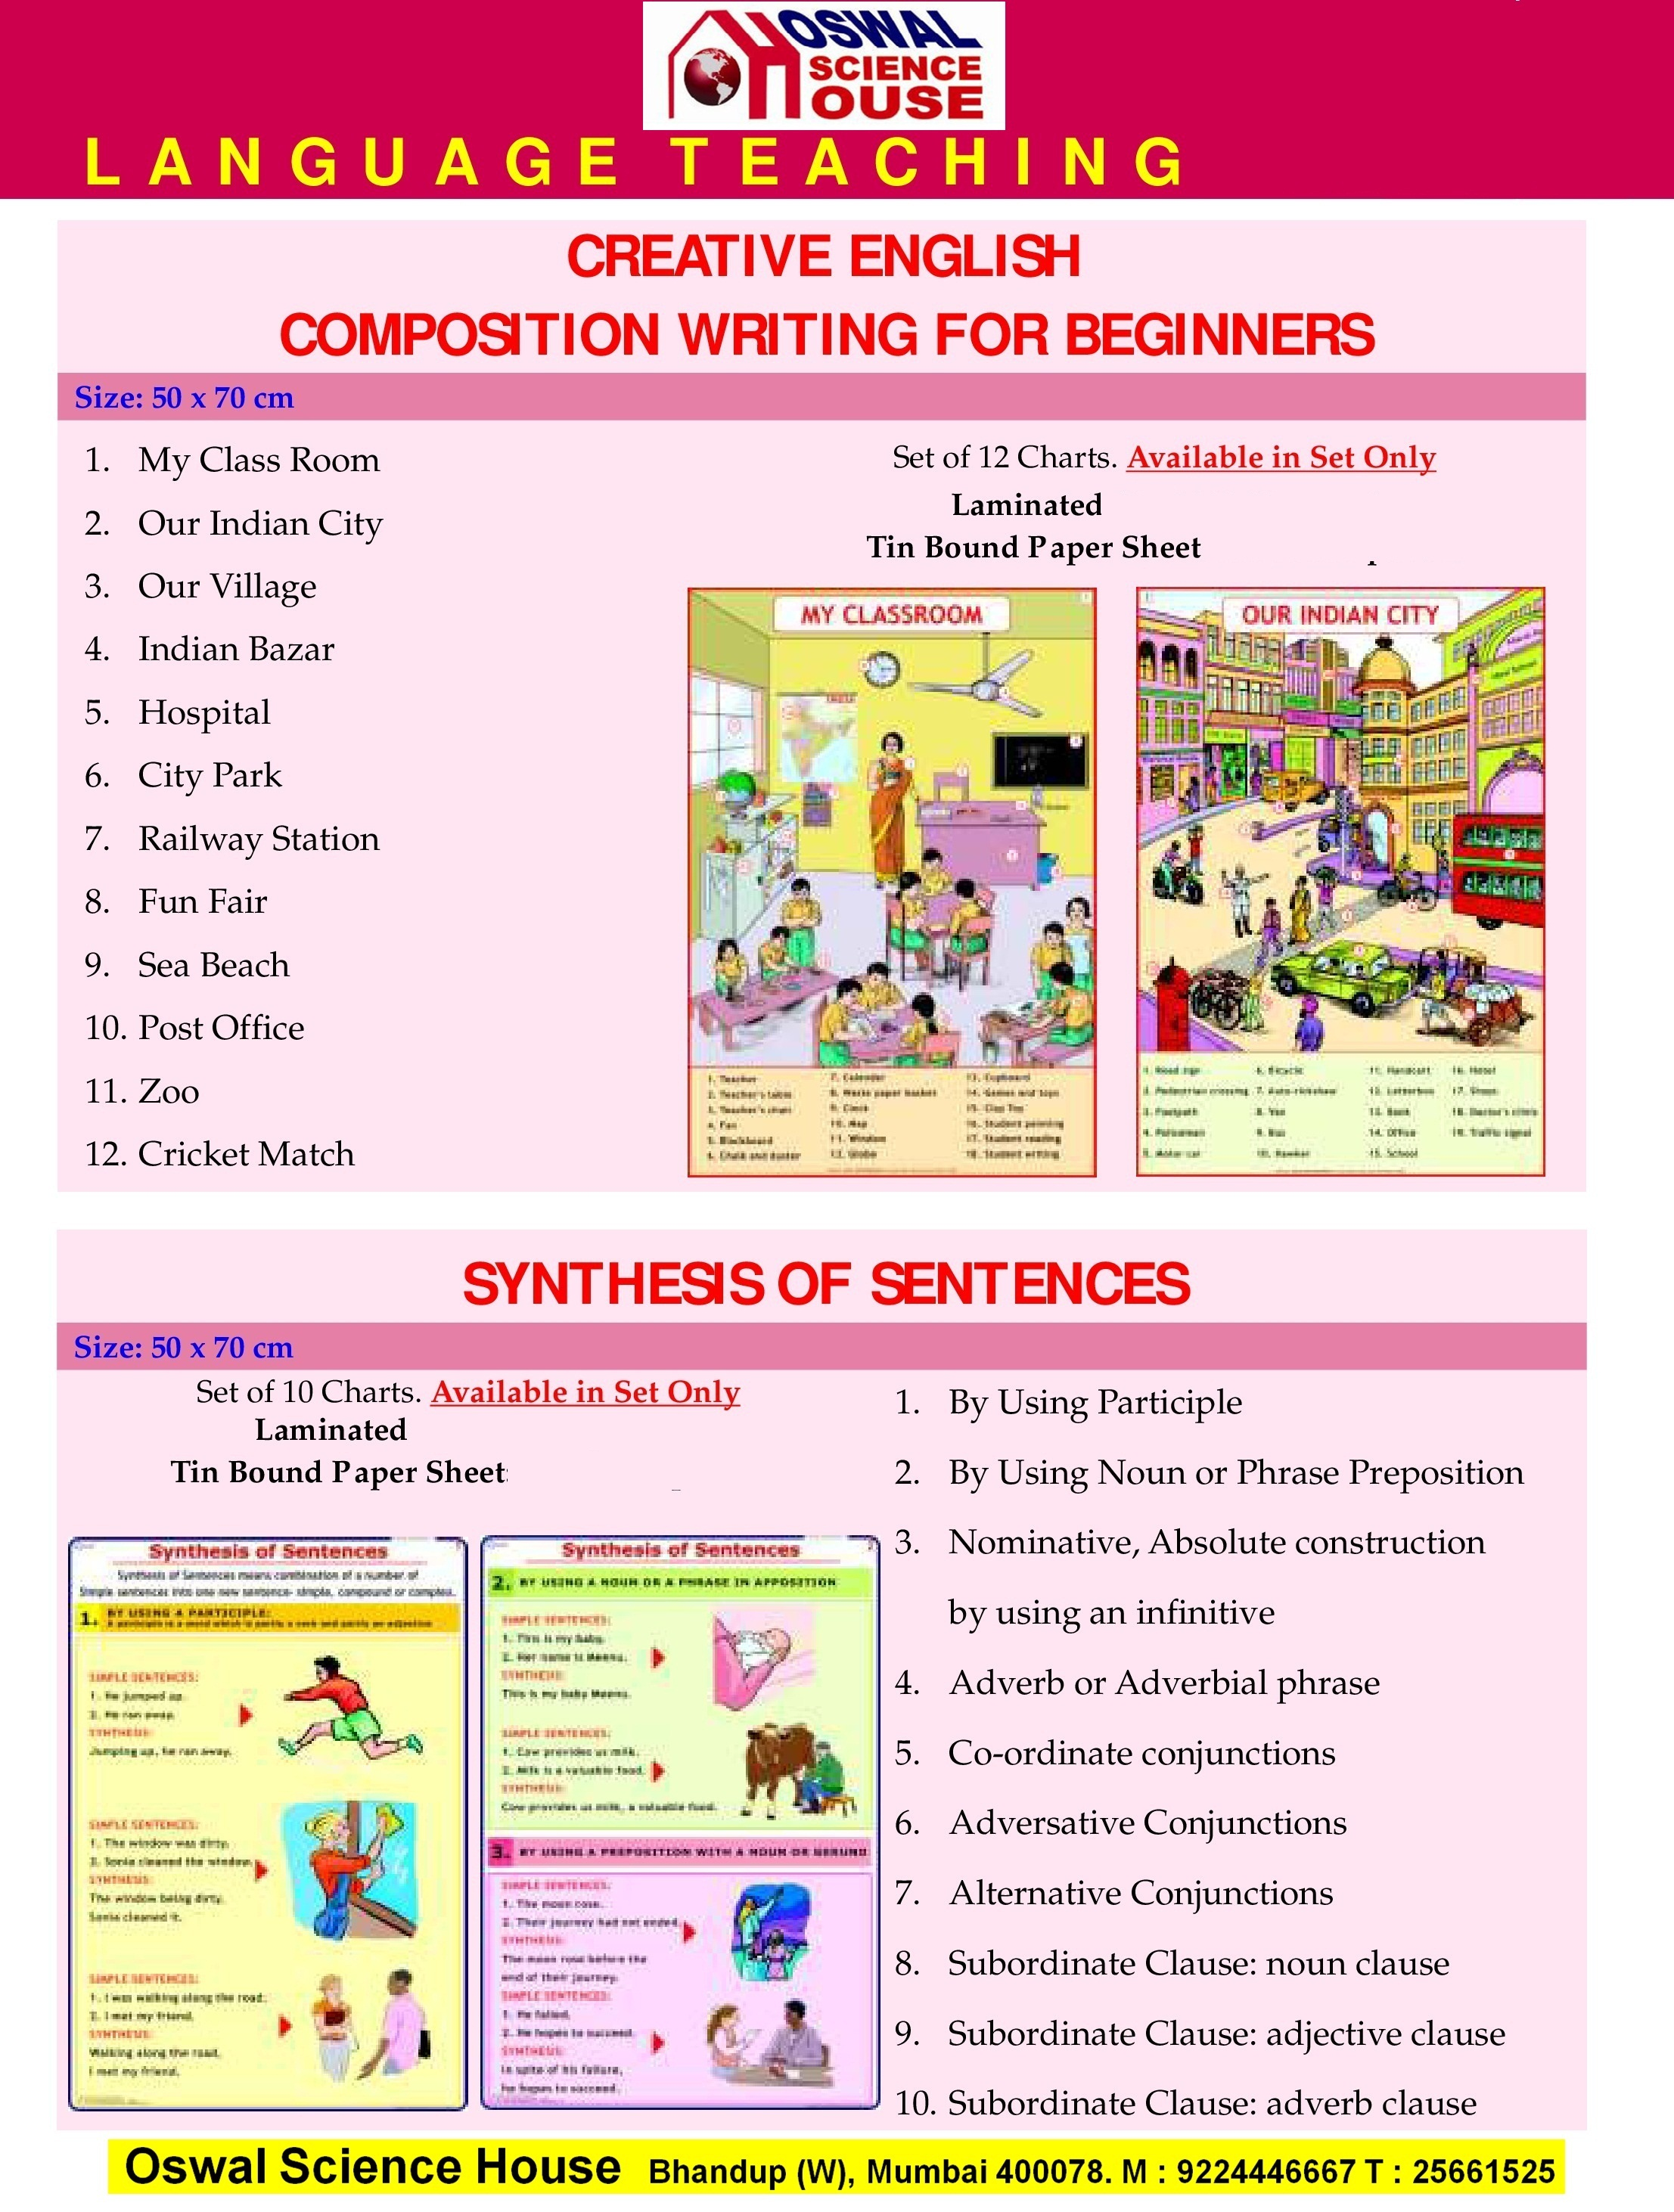 Creative writing services for beginners book